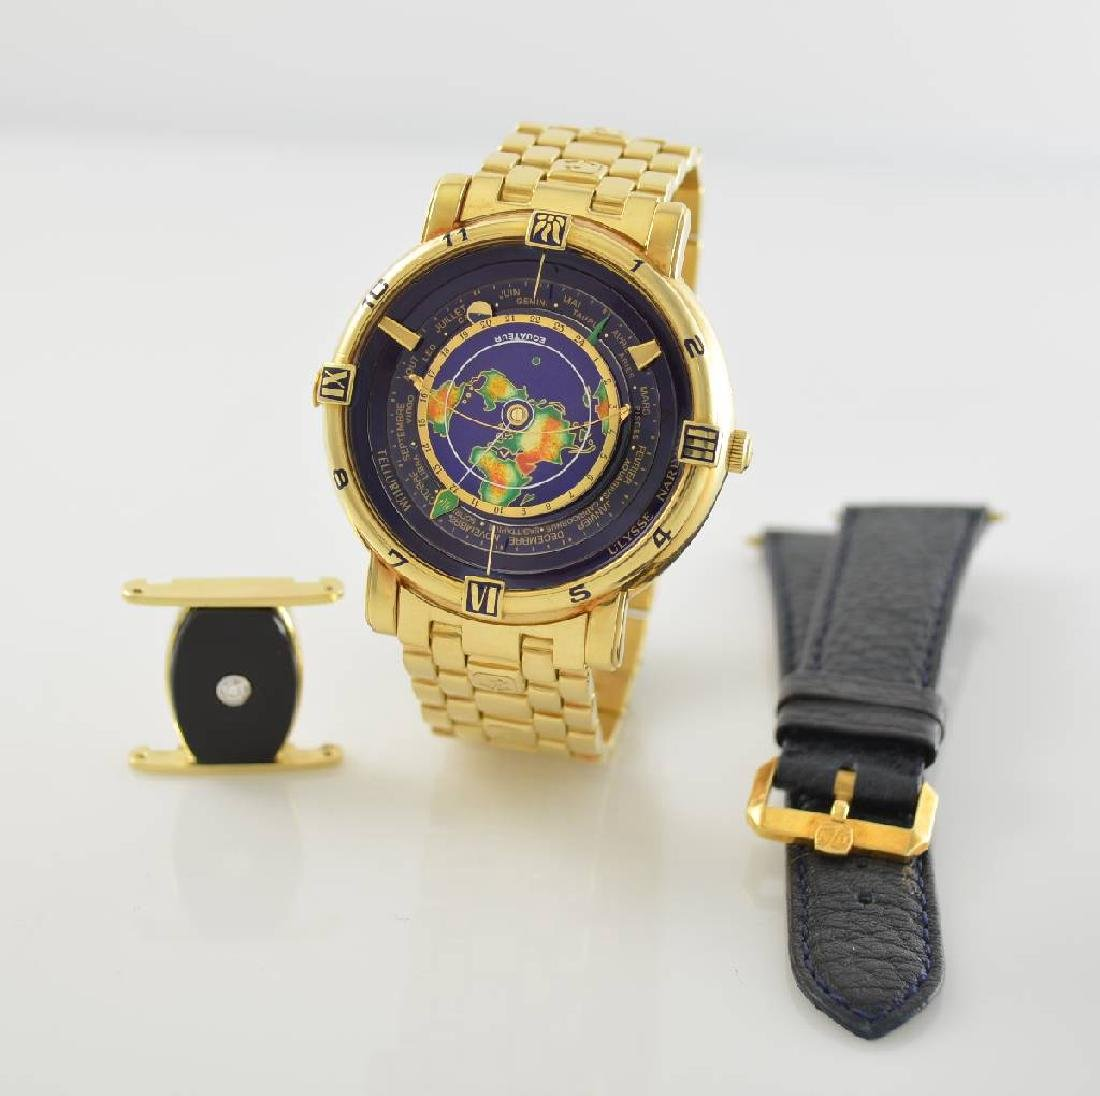 ULYSSE NARDIN Tellurium astronomical 18k yellow gold